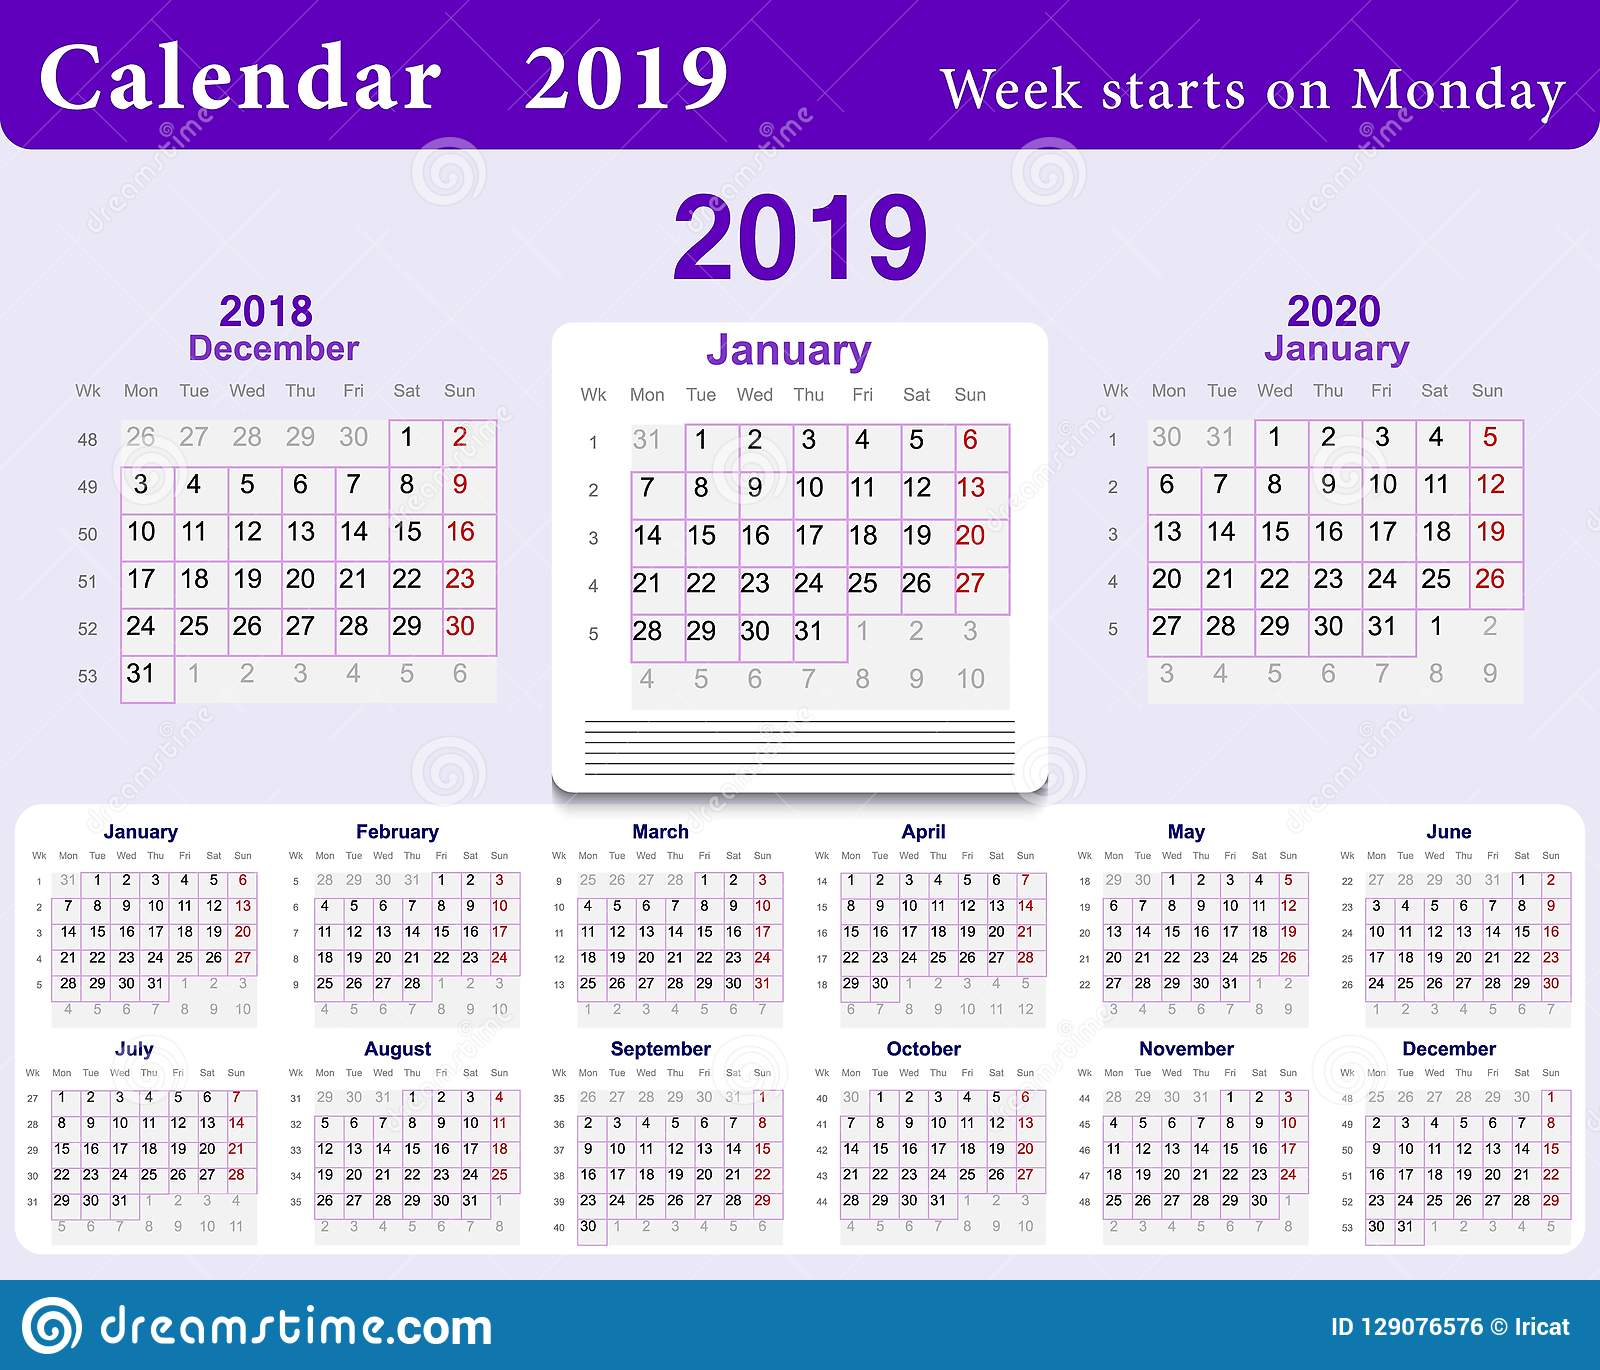 Calendar With Week Numbers 2020.Calendar Grid For 2019 In English Language Wall Template In Blue